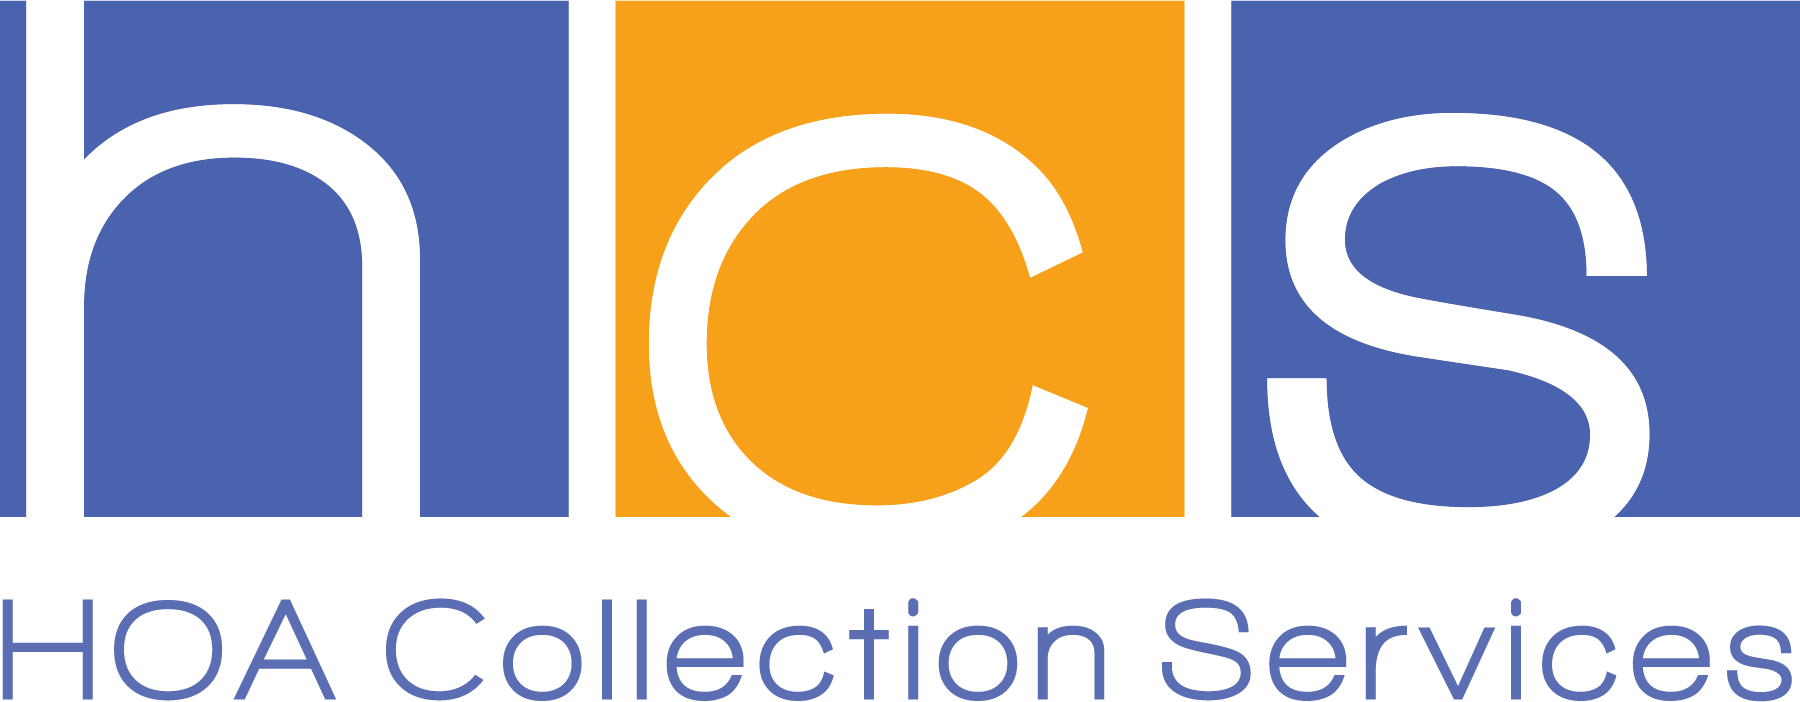 HOA Collection Services